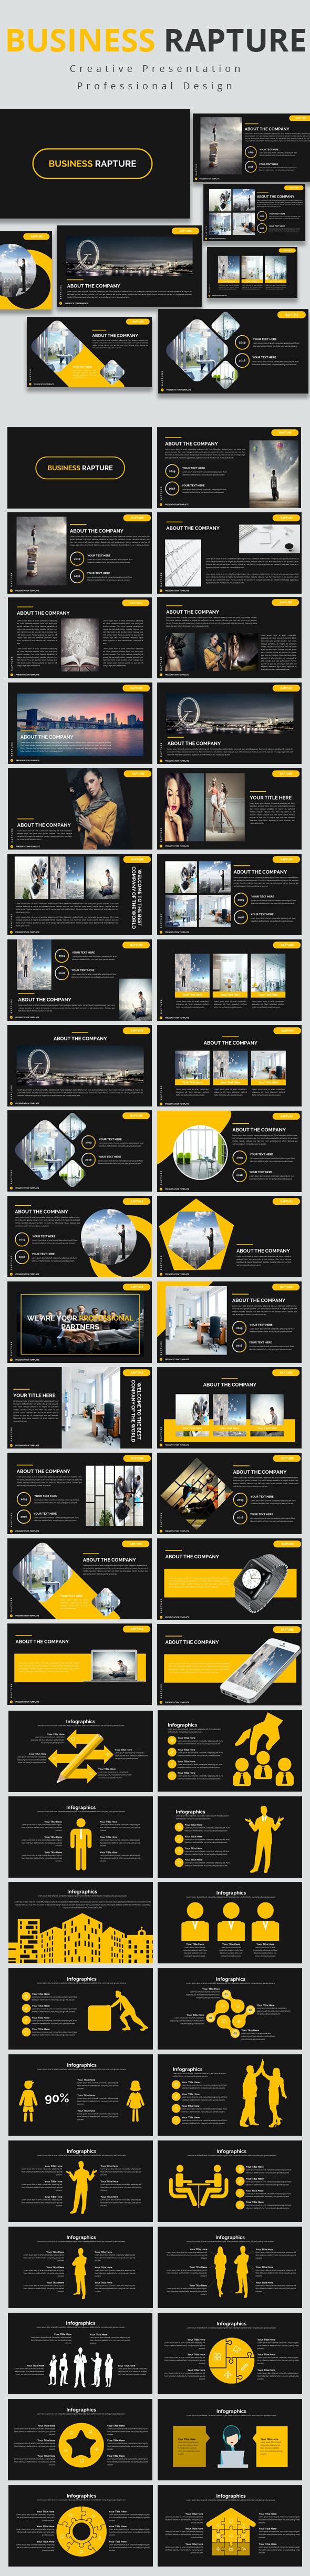 Business Rapture Powerpoint Template - Business PowerPoint Templates